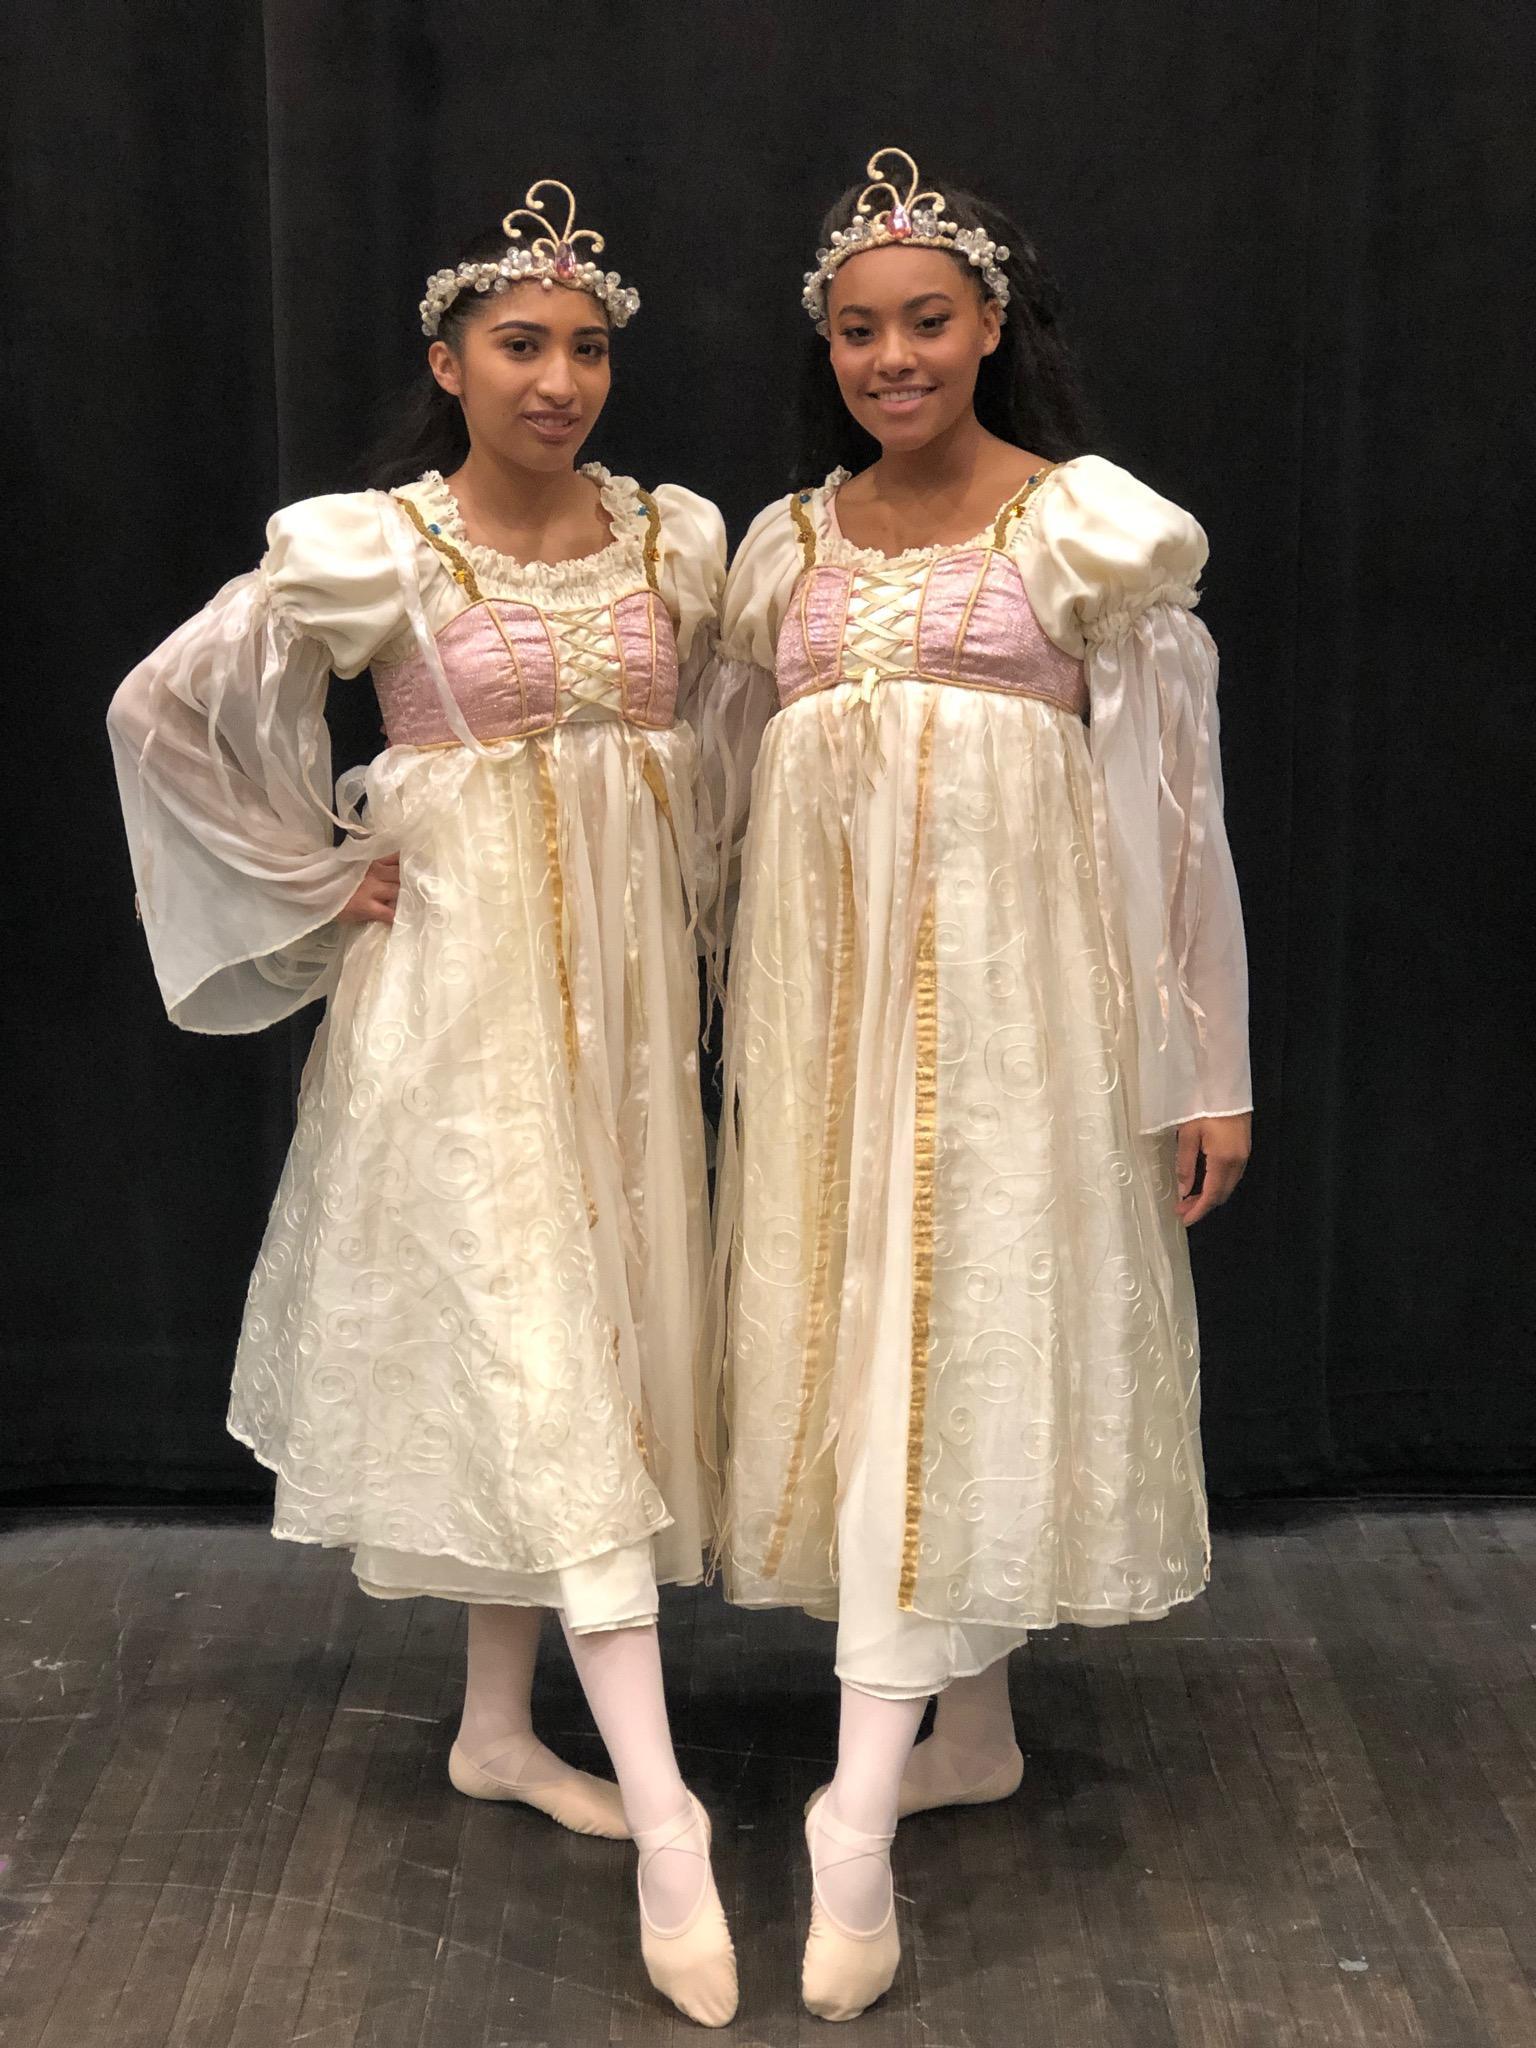 Vanessa Galaviz and Alexis Harris in  The Nutcracker  at the Michigan Opera Theatre.